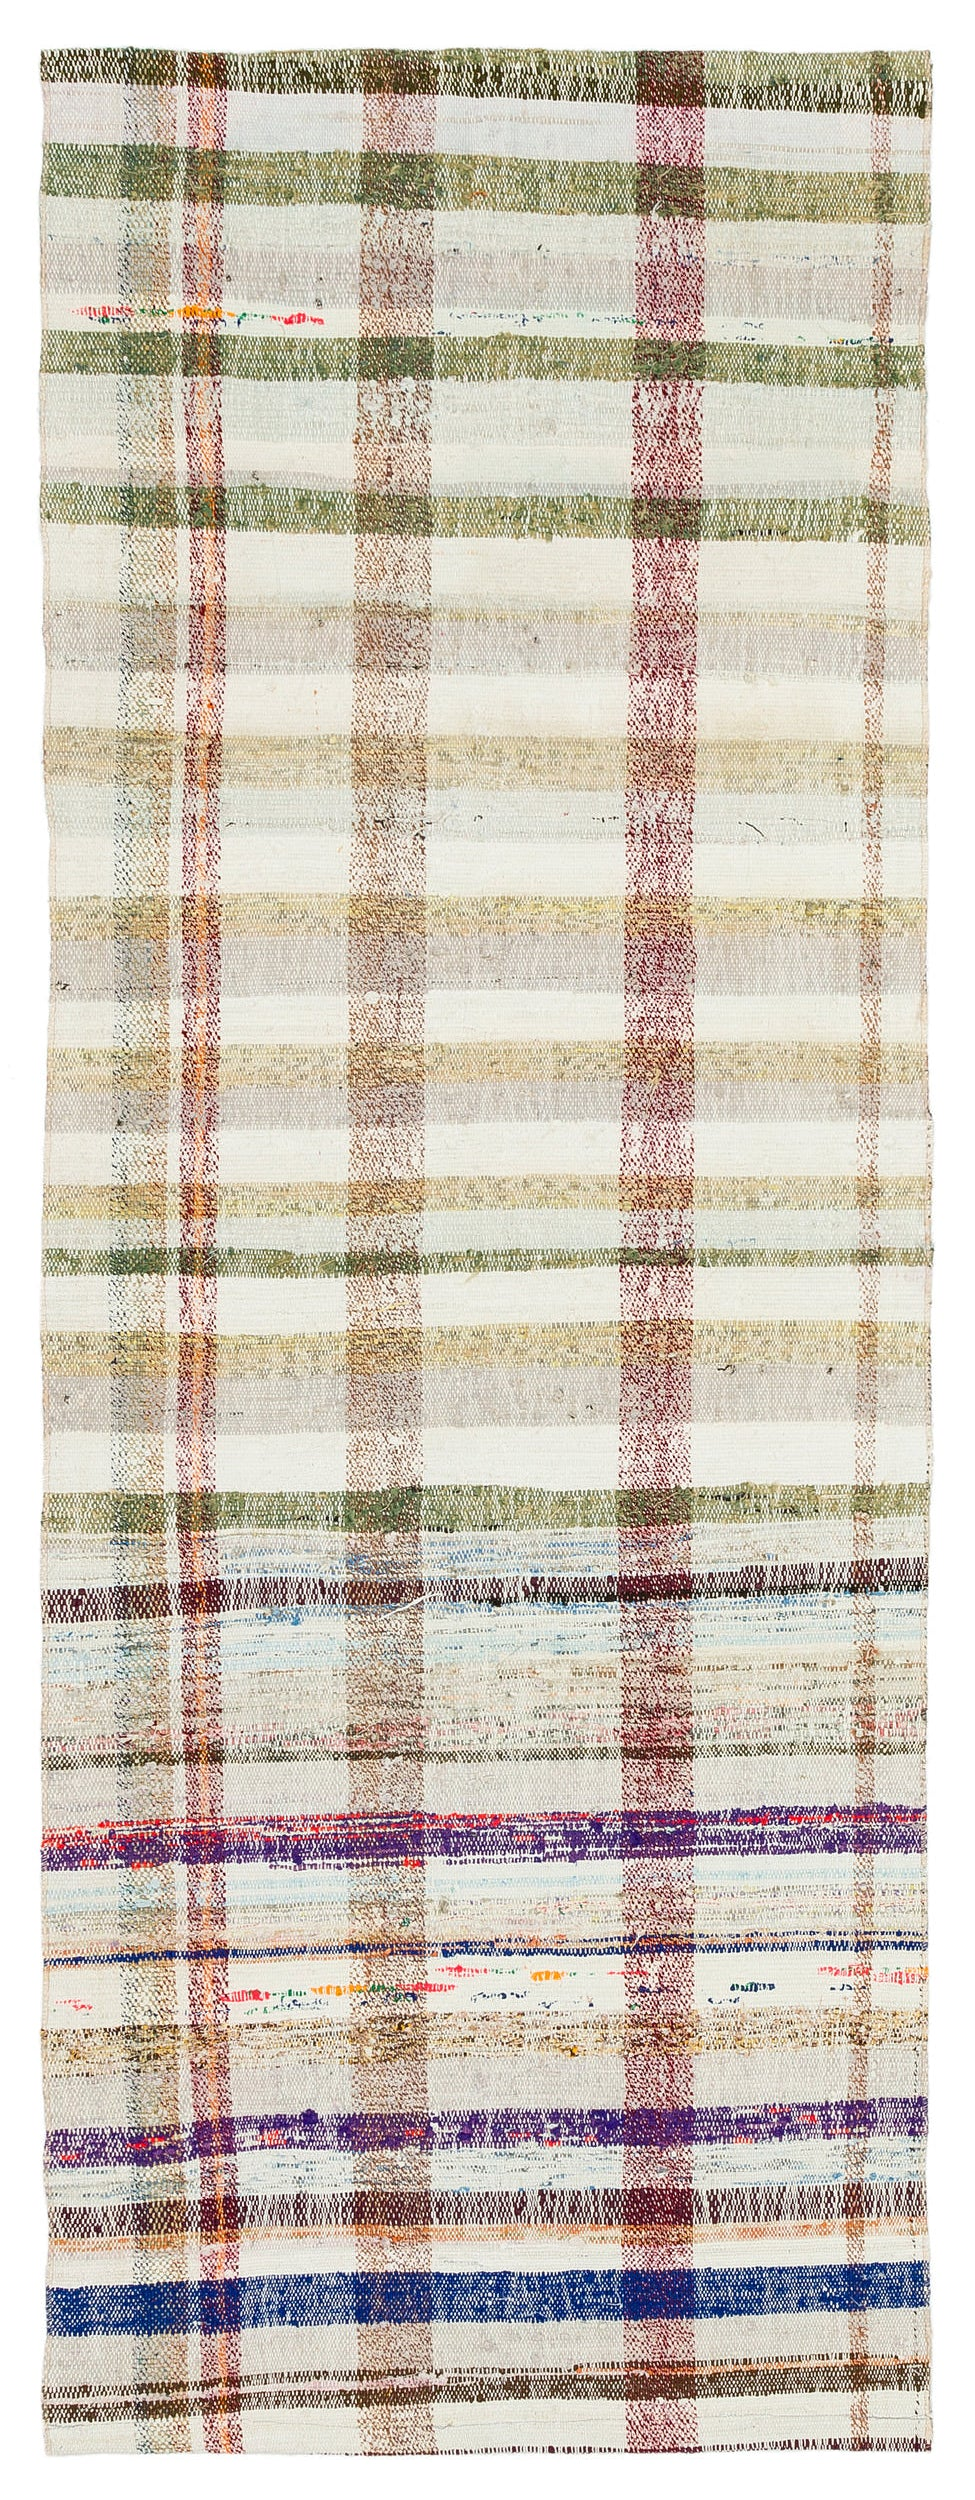 Chaput Over Dyed Kilim Rug 2'6'' x 6'9'' ft 76 x 207 cm